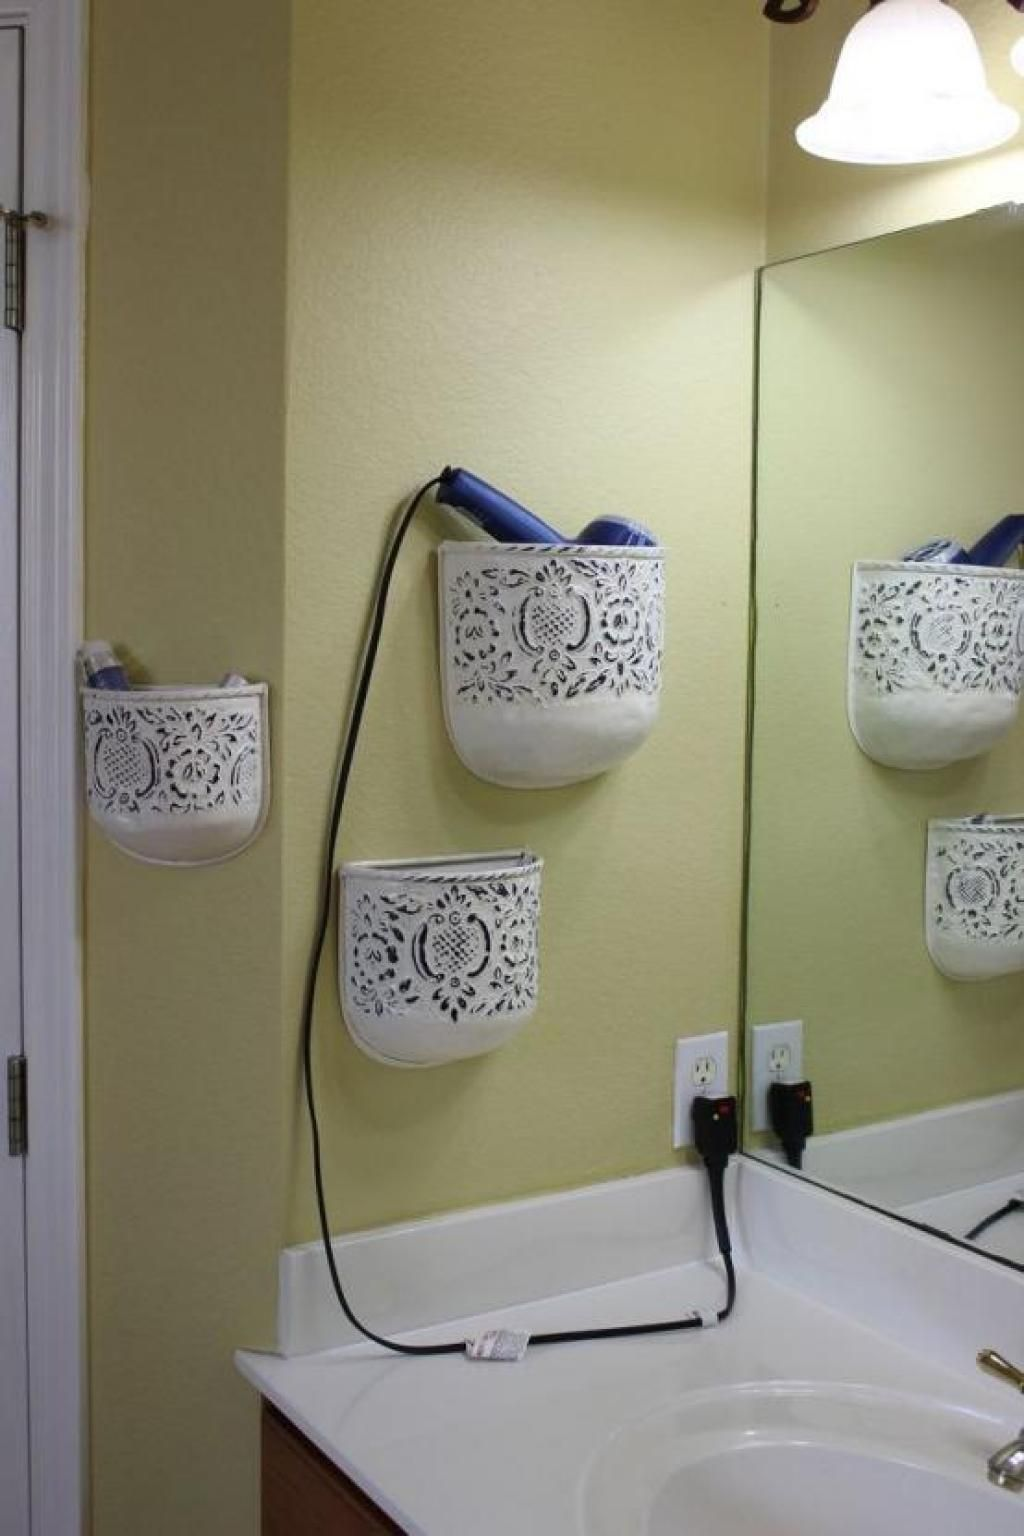 Bathroom Design Tools #46 - Practical Bathroom Storage Ideas Hair Dryer Storage And Bathroom Tools With  White Hanging Lighting Genius And Easy Applied Bathroom Shelving Ideas  Bathroom ...